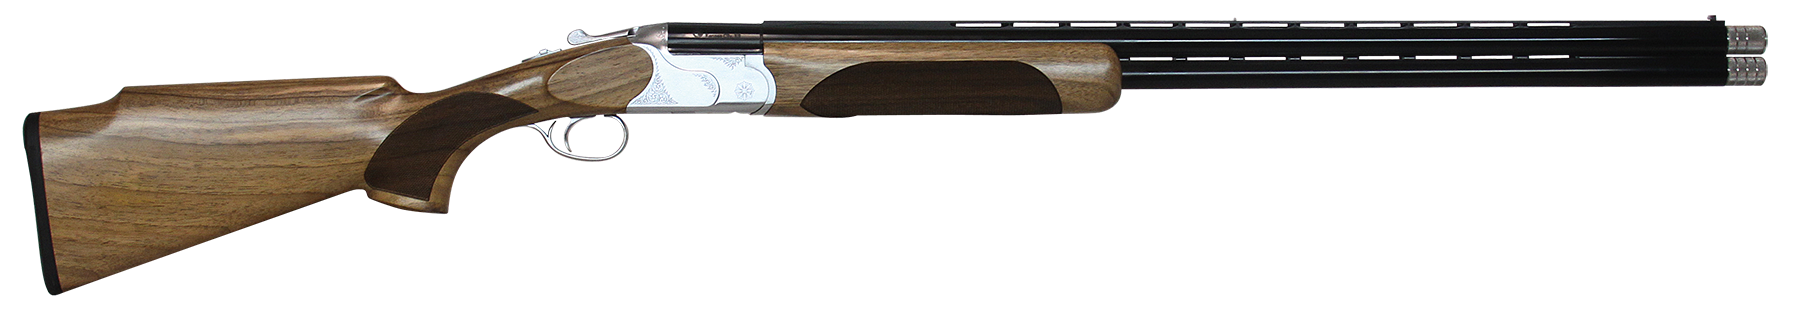 CZ-USA Redhead Premier Target Over/Under Shotgun 3'' 12 Gauge 30'' Silver - Turkish Walnut